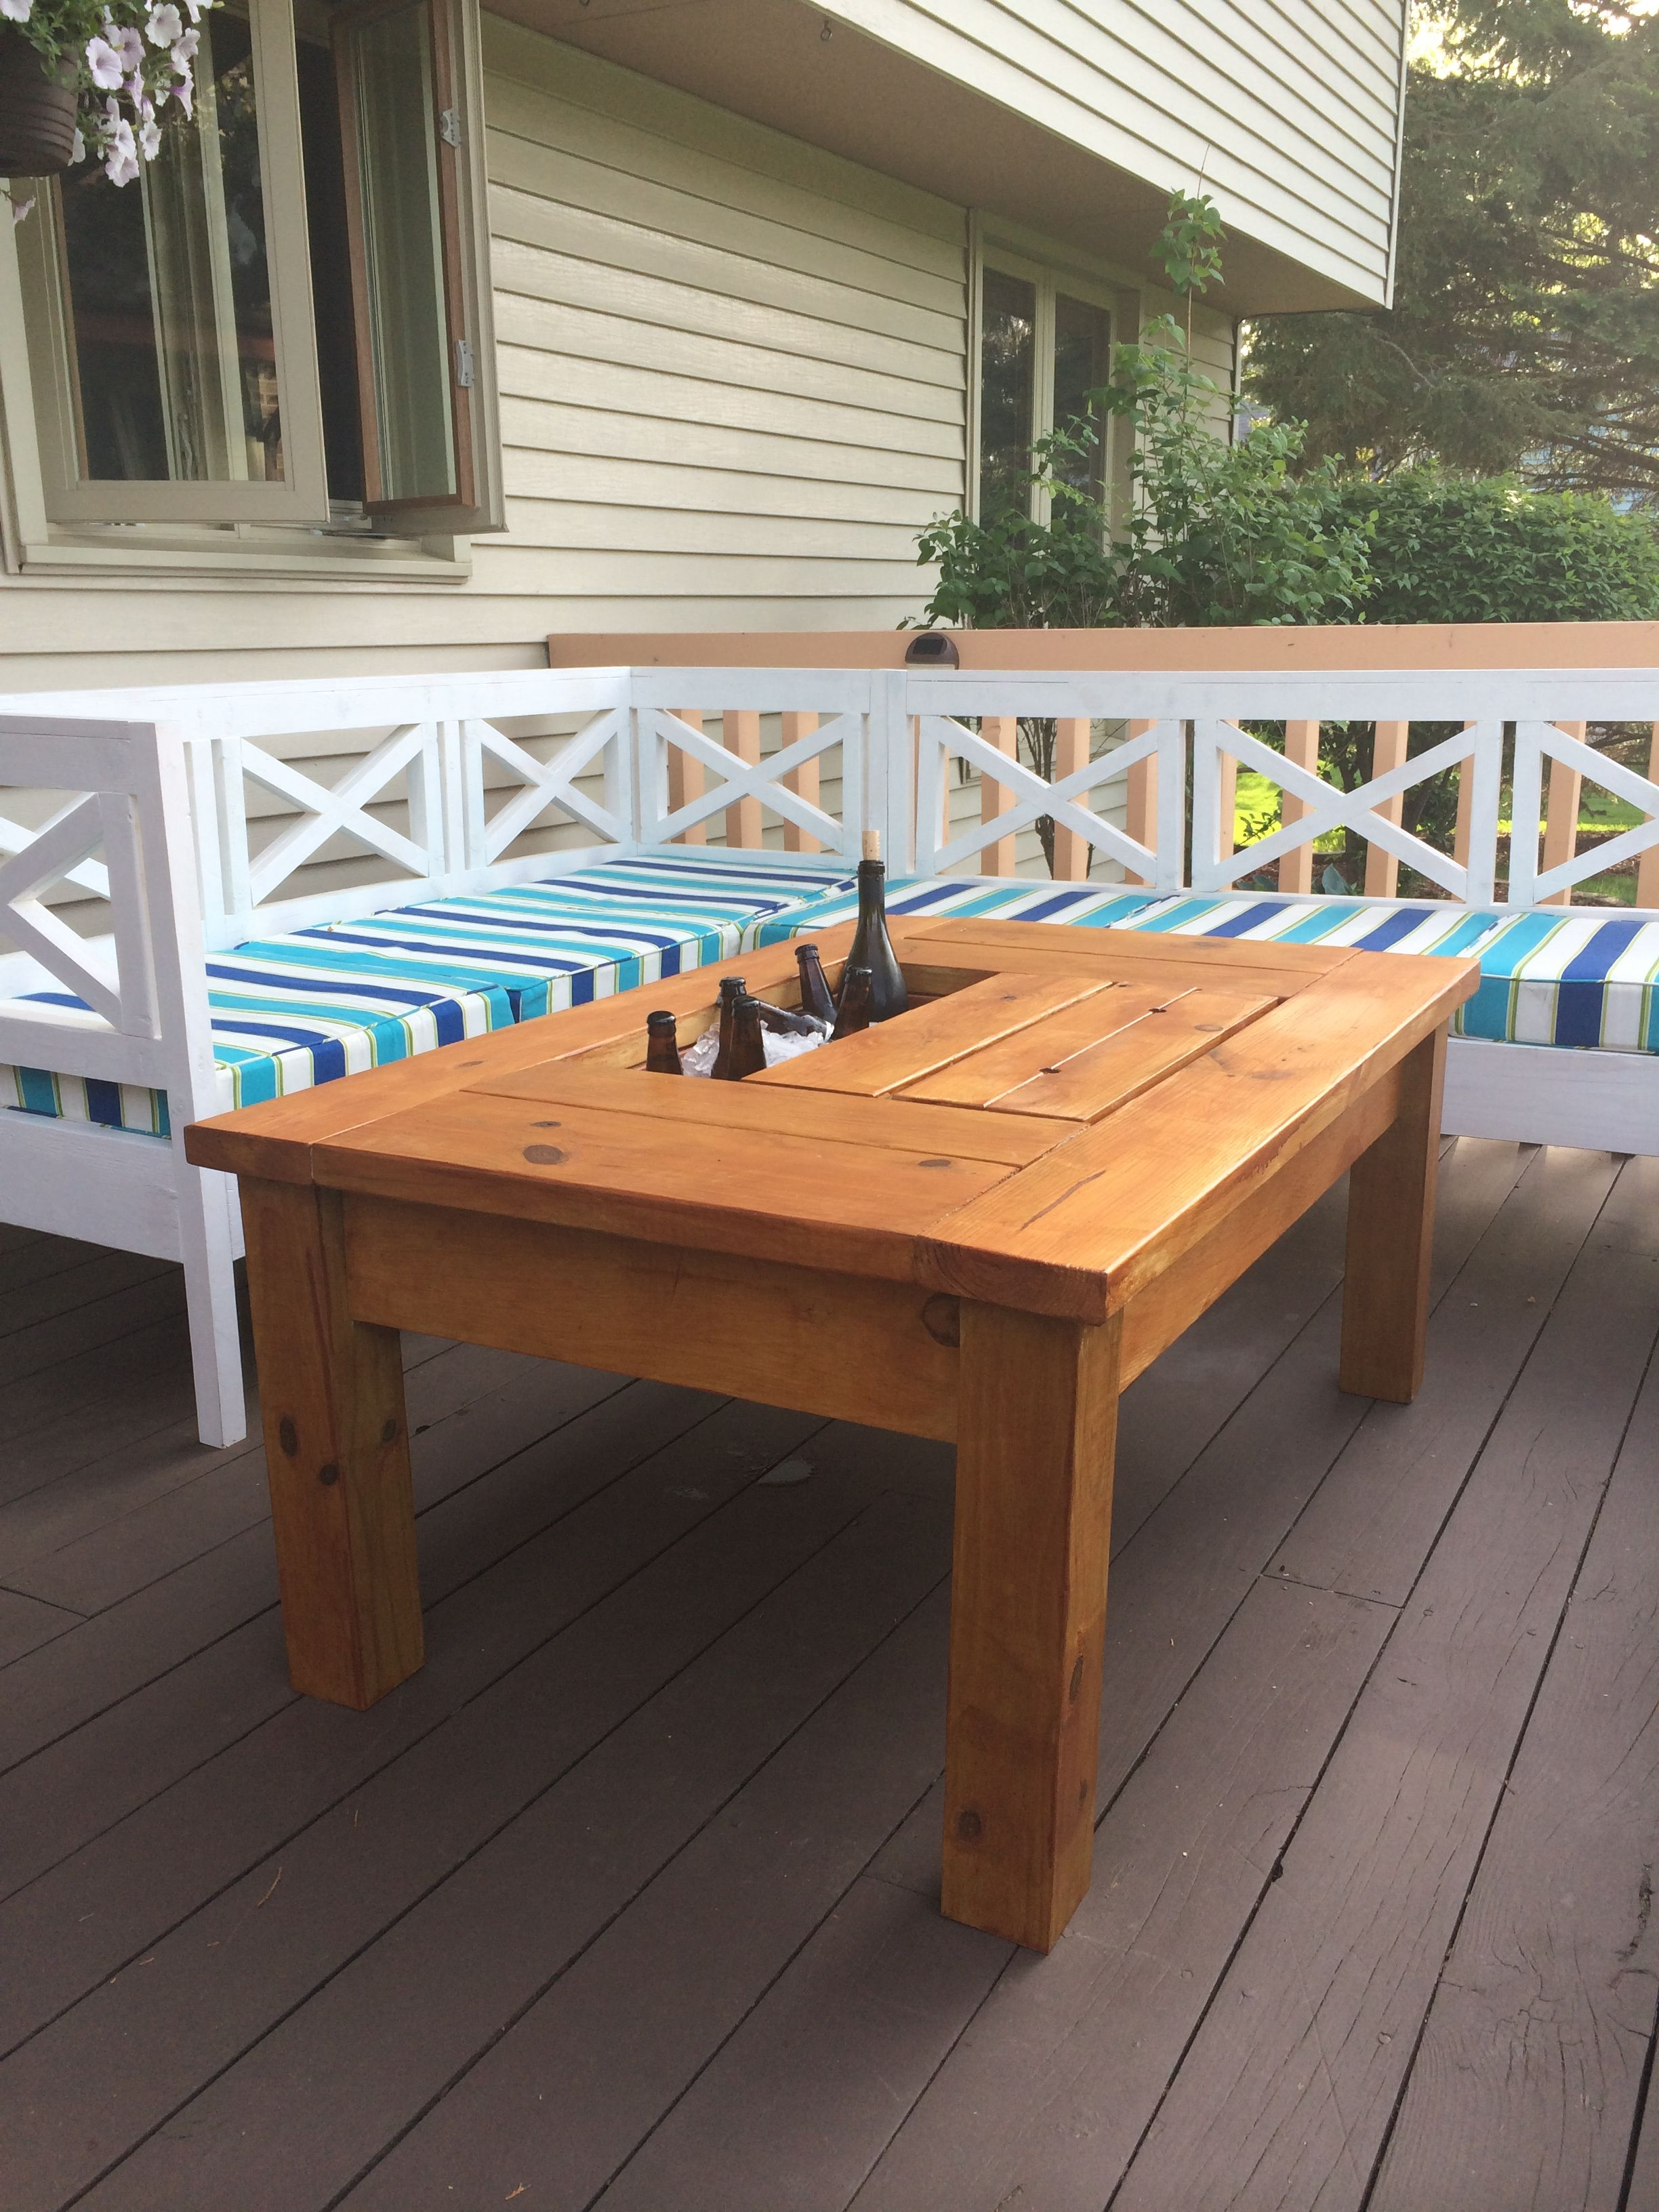 Elegant Patio Table With Built In Beer/Wine Coolers   DIY Projects